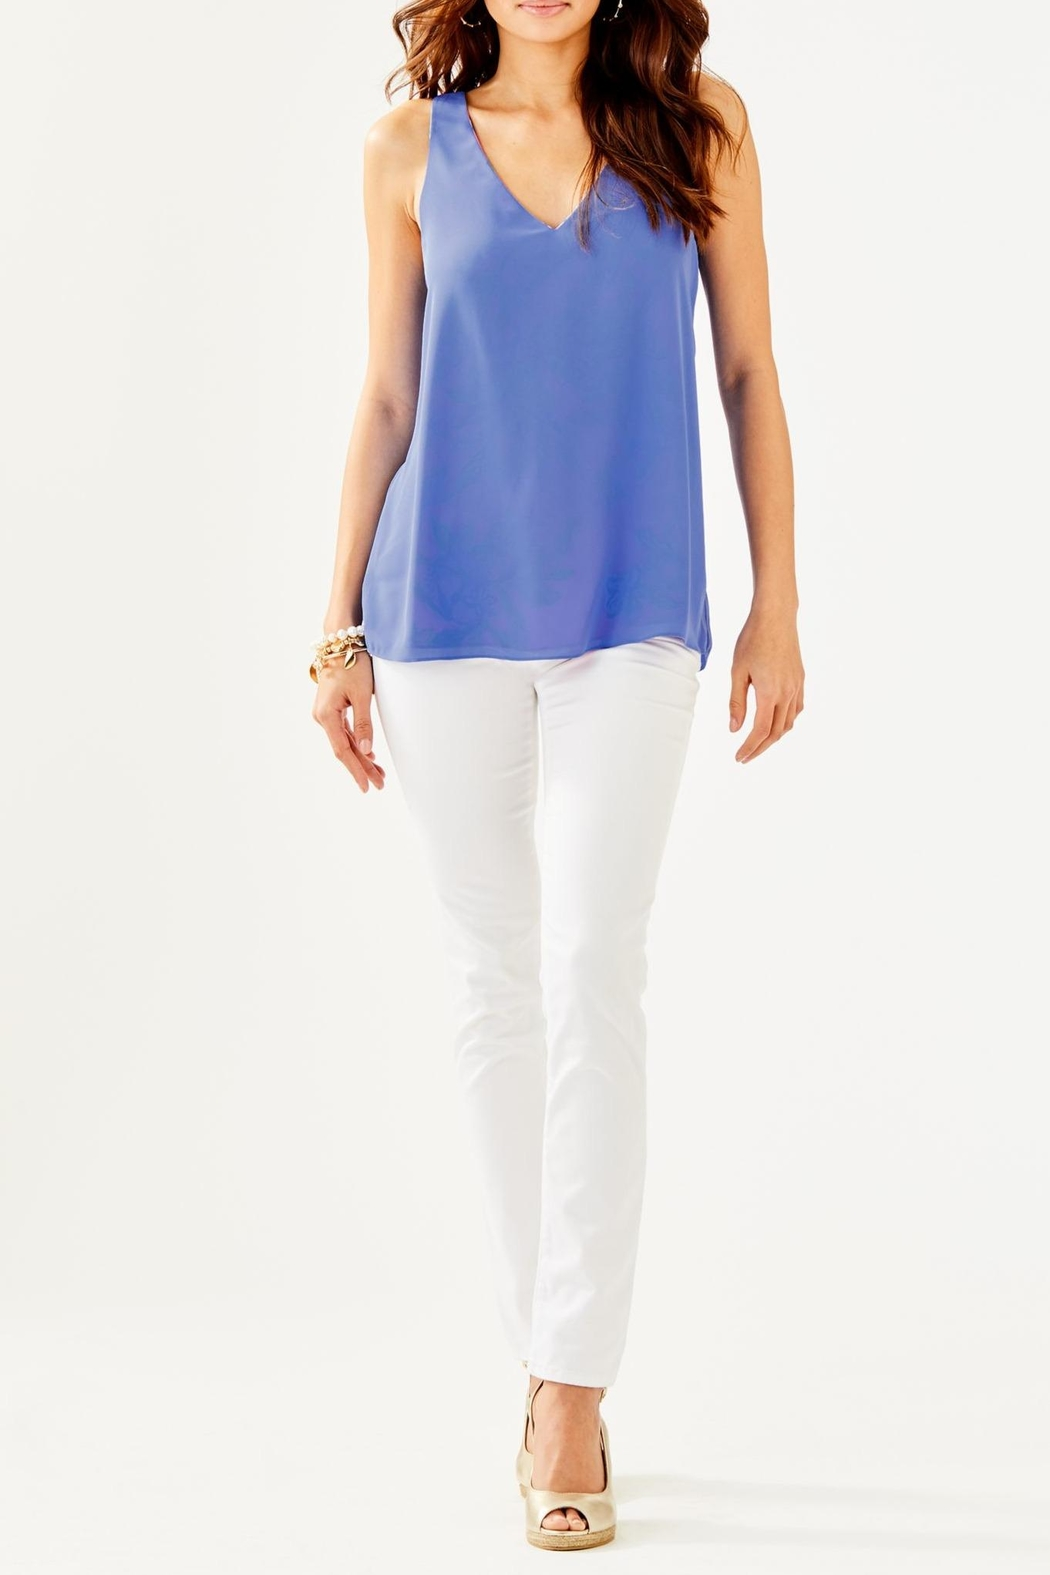 Lilly Pulitzer Florin V-Neck Top - Side Cropped Image